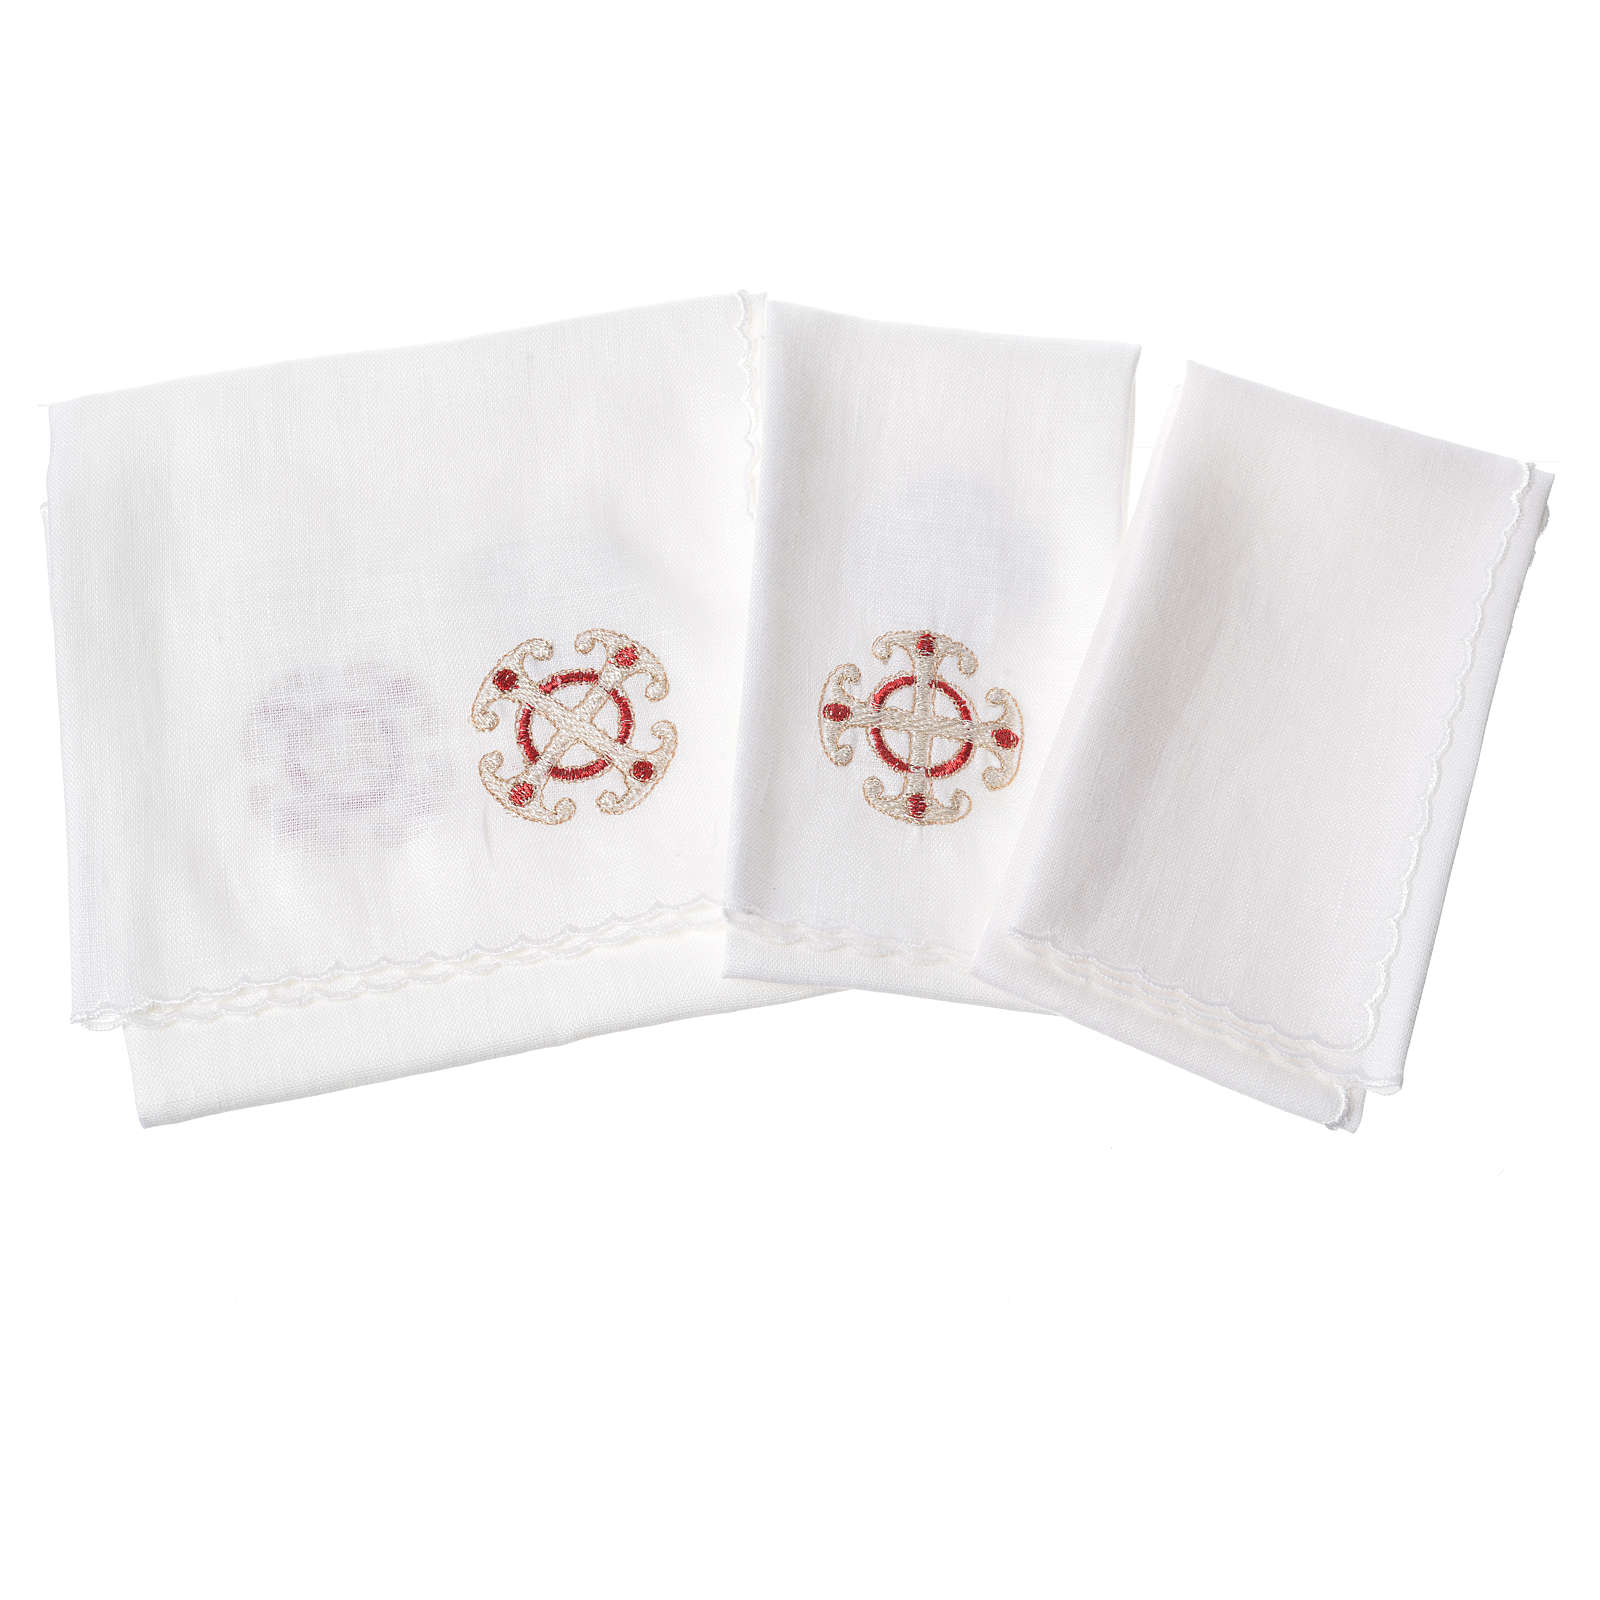 Altar linen set, 100% linen with cross and decorations 4